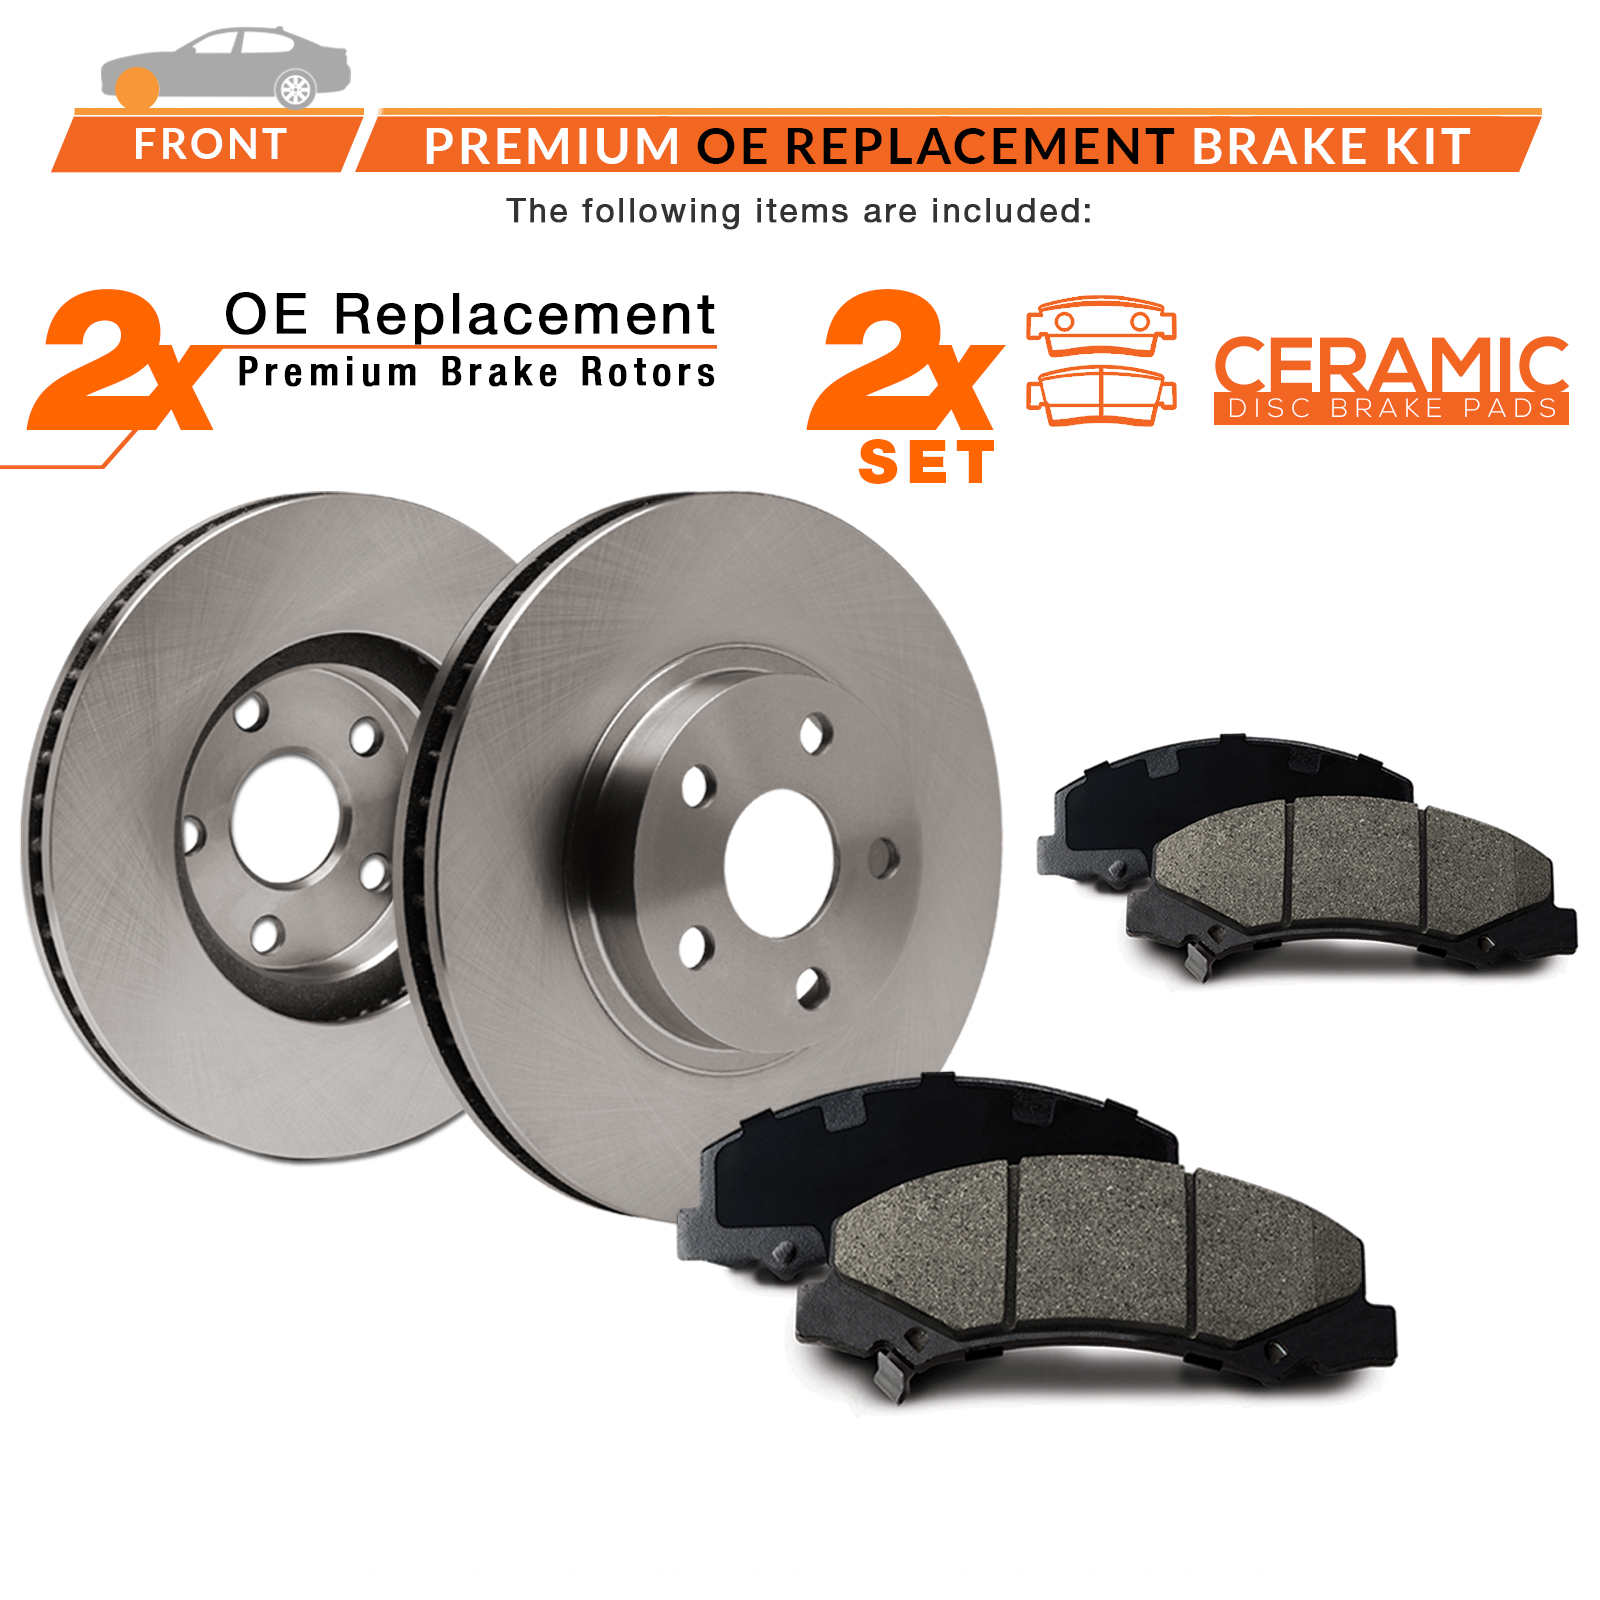 Front-Rotors-w-Ceramic-Pads-OE-Brakes-2008-2016-Fit-Dodge-Grand-Caravan thumbnail 2